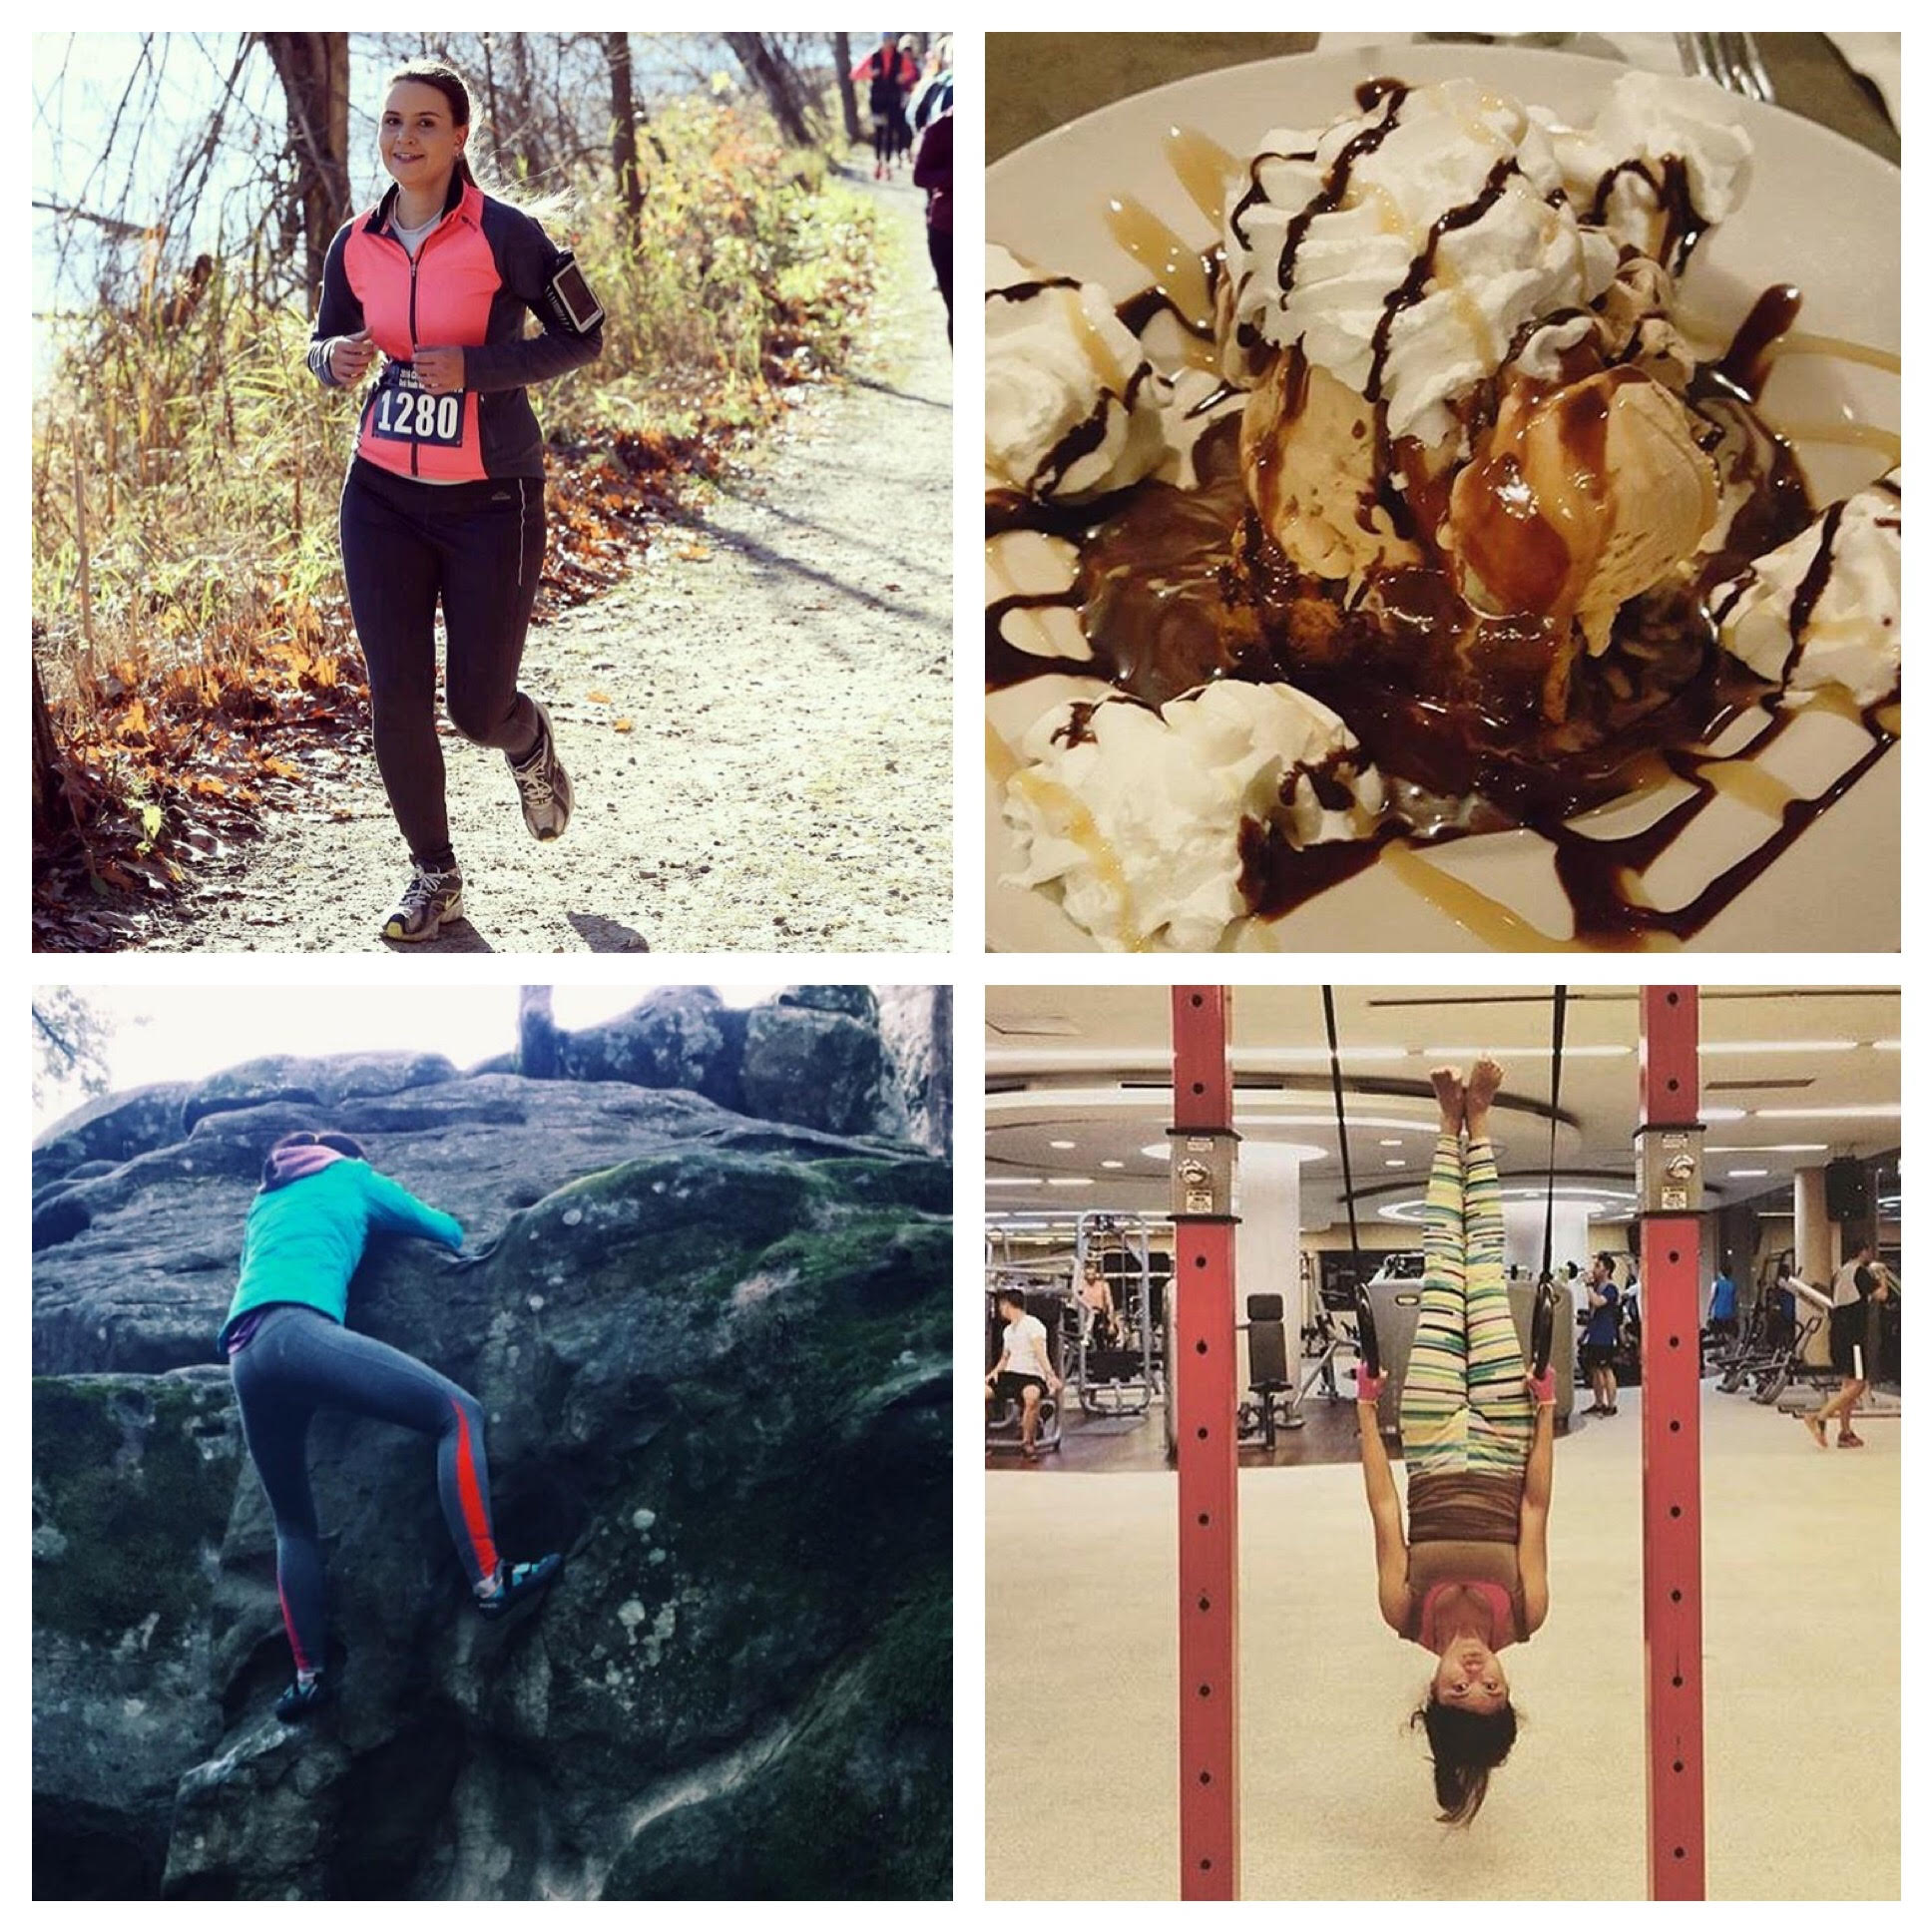 Clockwise from left: Jana Wilbricht on a trail run in Clarkston, Amy Pistone's yummy dessert in Ann Arbor, Daniela Morar rock climbing in California, Rika Nova going head over heels at the gym in Ann Arbor.